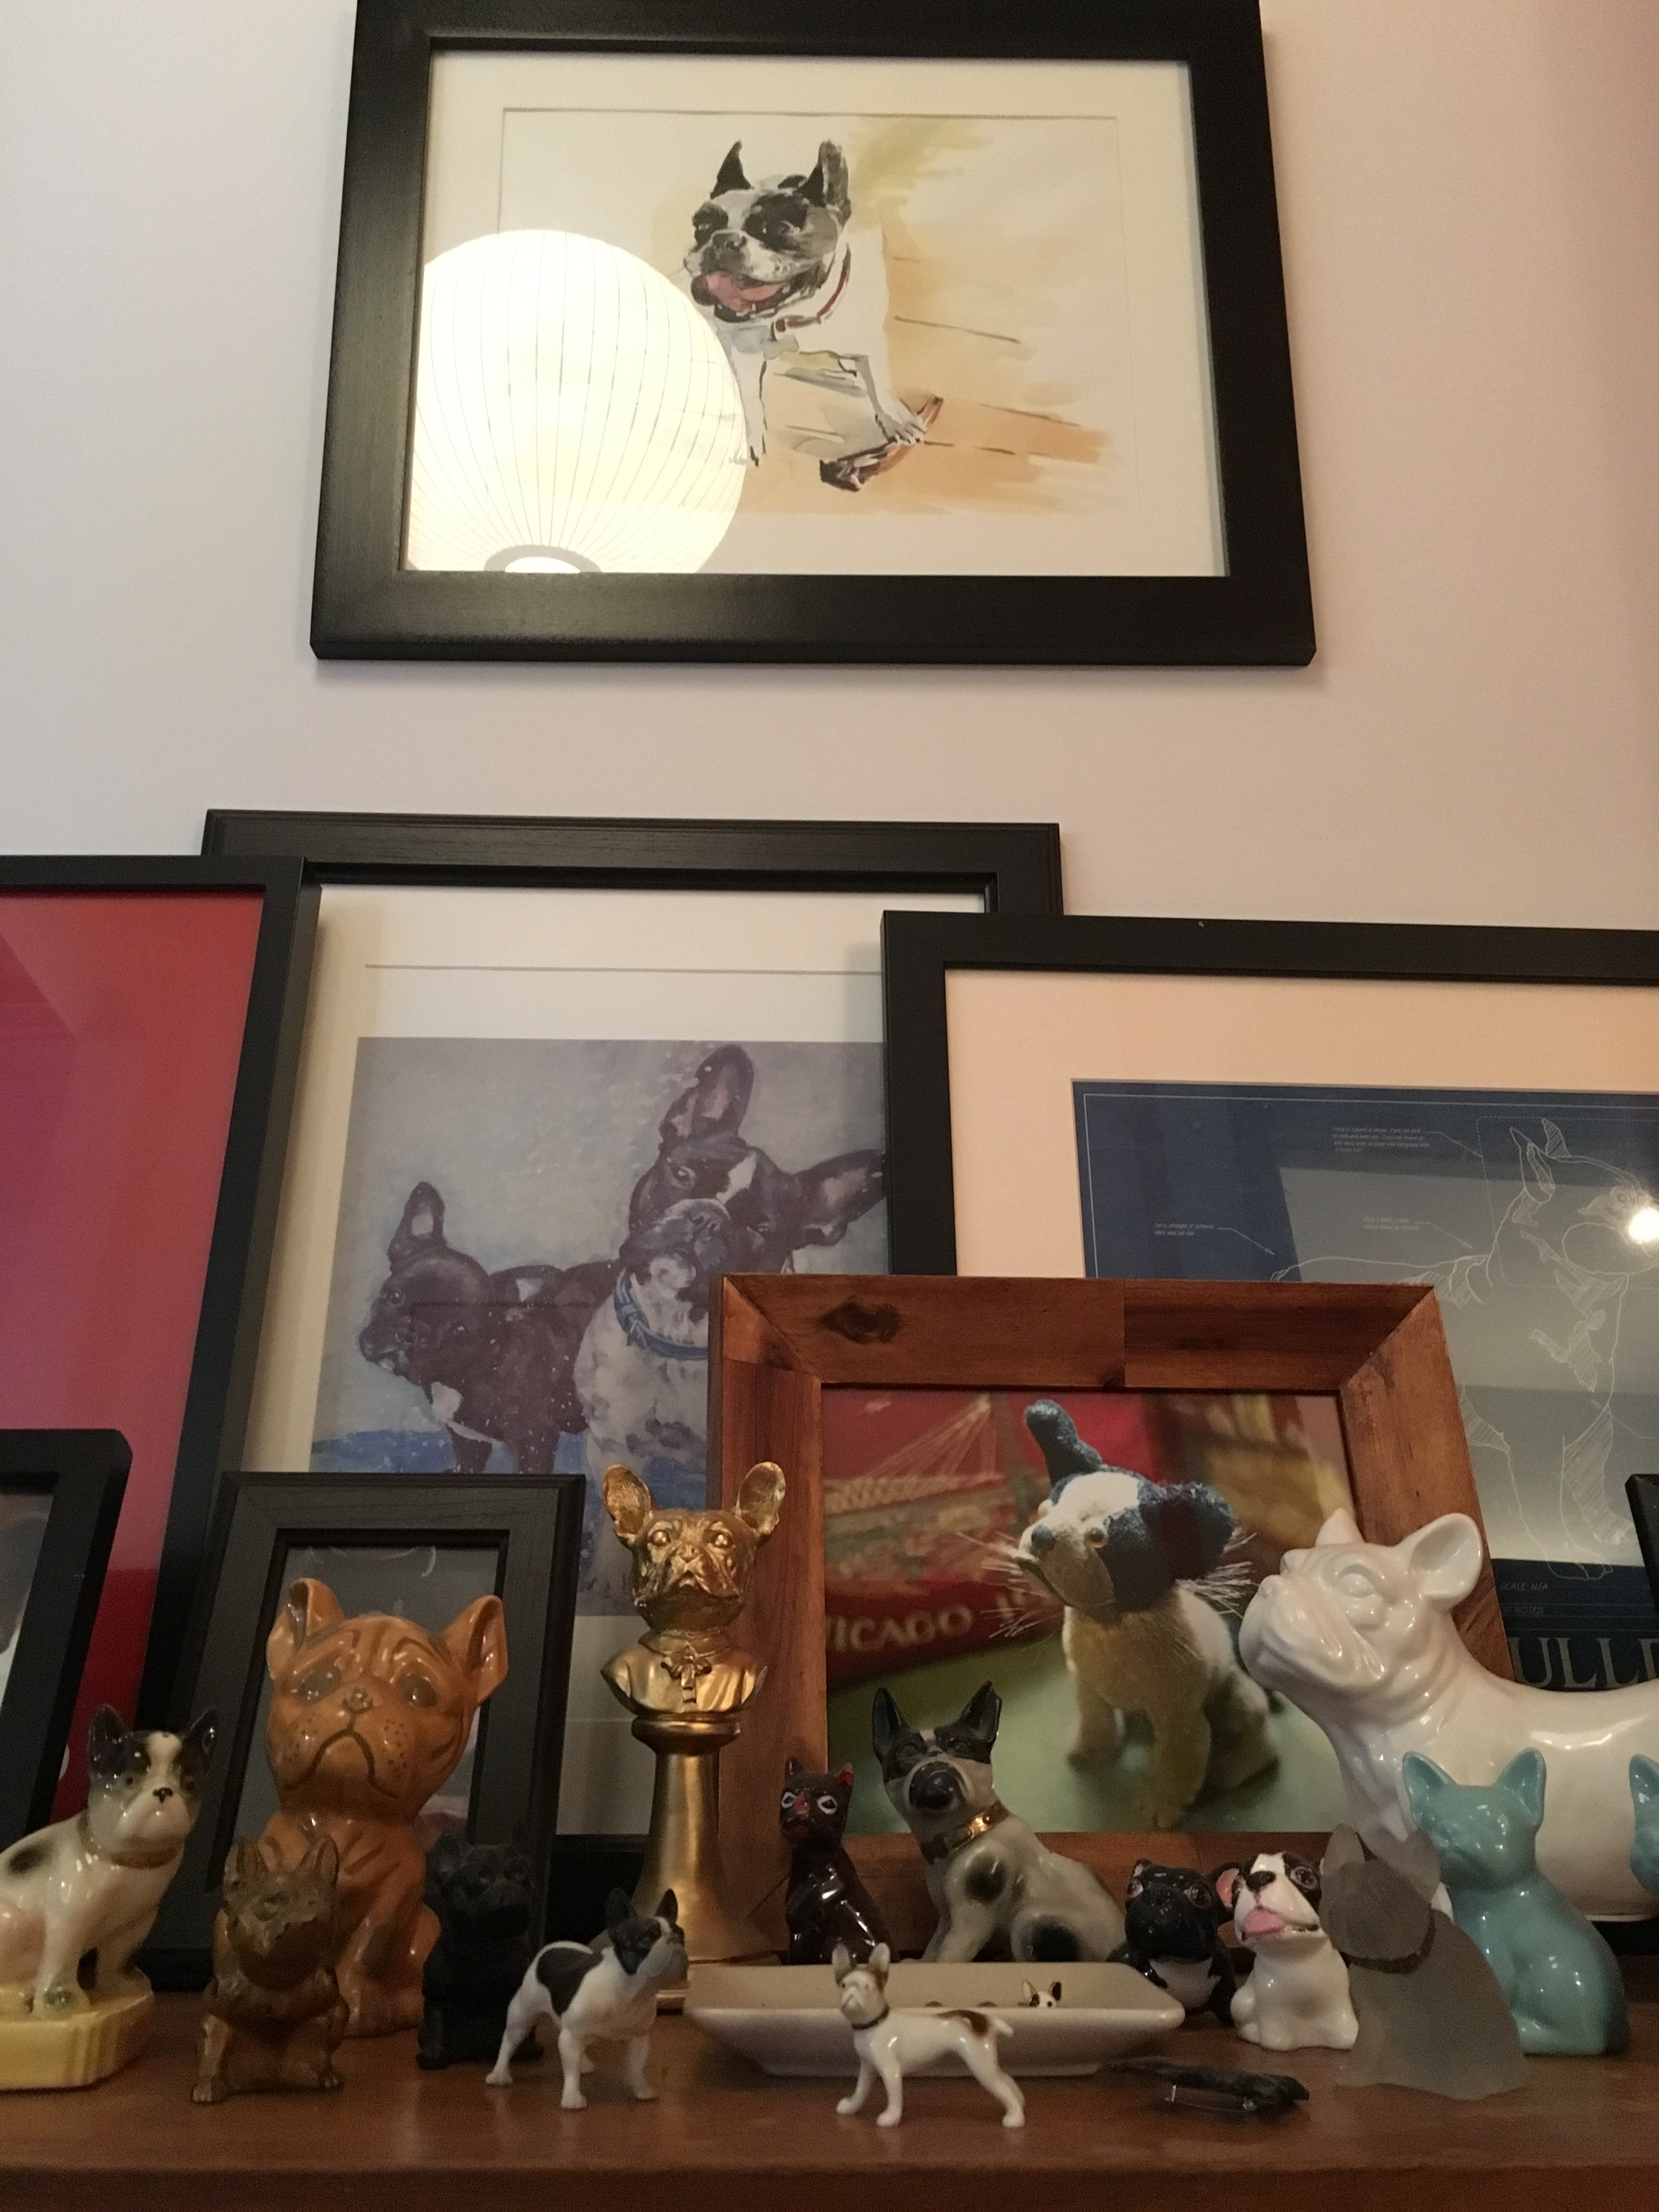 This is the Frenchie Shrine in my house. Most of the artwork and objects are gifts from friends. At the top is a beautiful watercolor portrait of my dear, sweet late Frenchie Prue by Dmitry Samarov. It's not hoarding if it's organized, right?